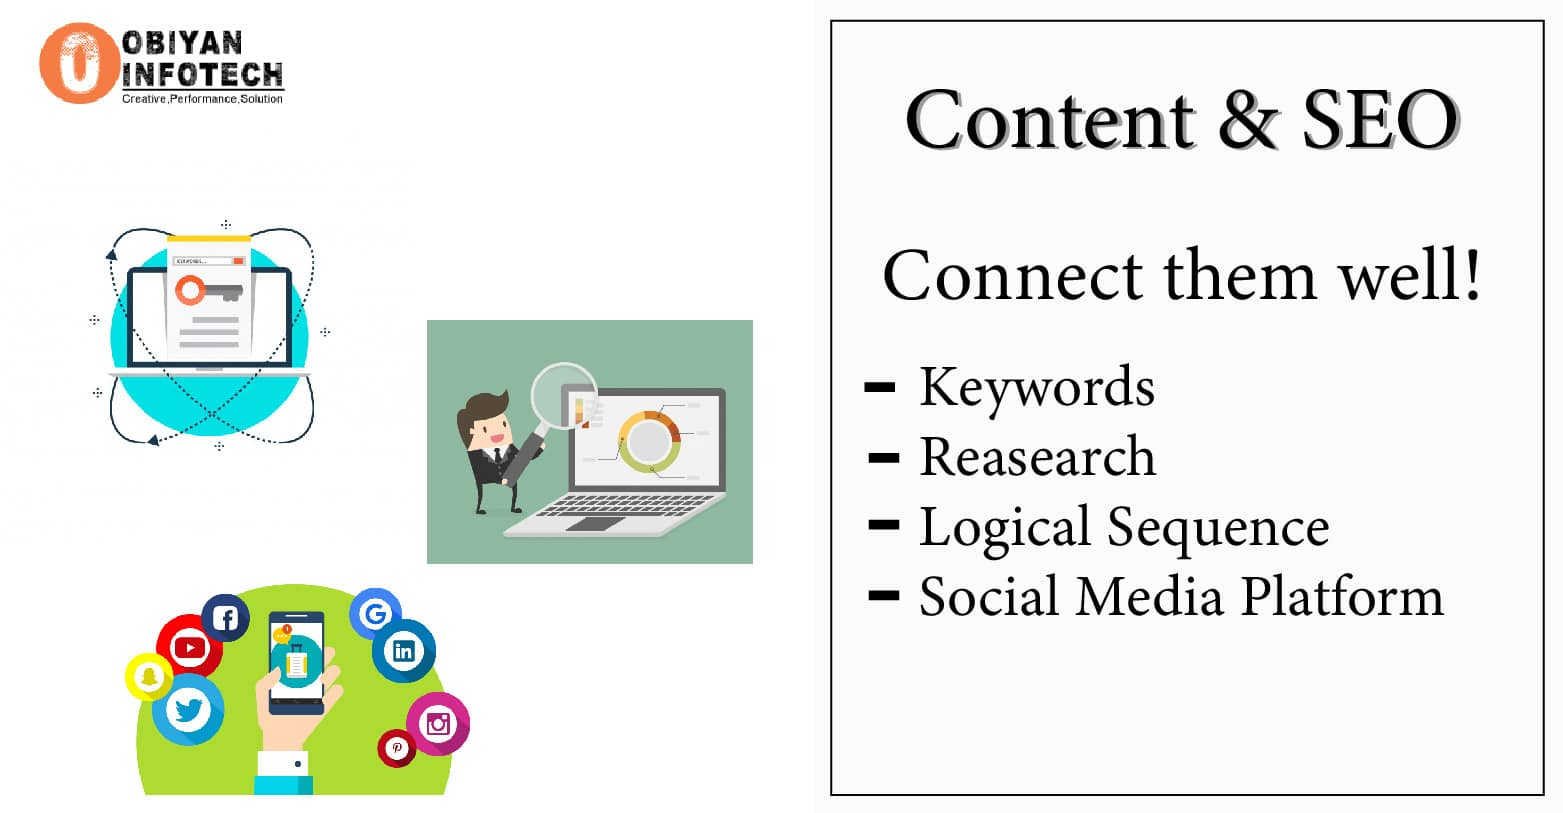 How are Content and SEO Interconnected?